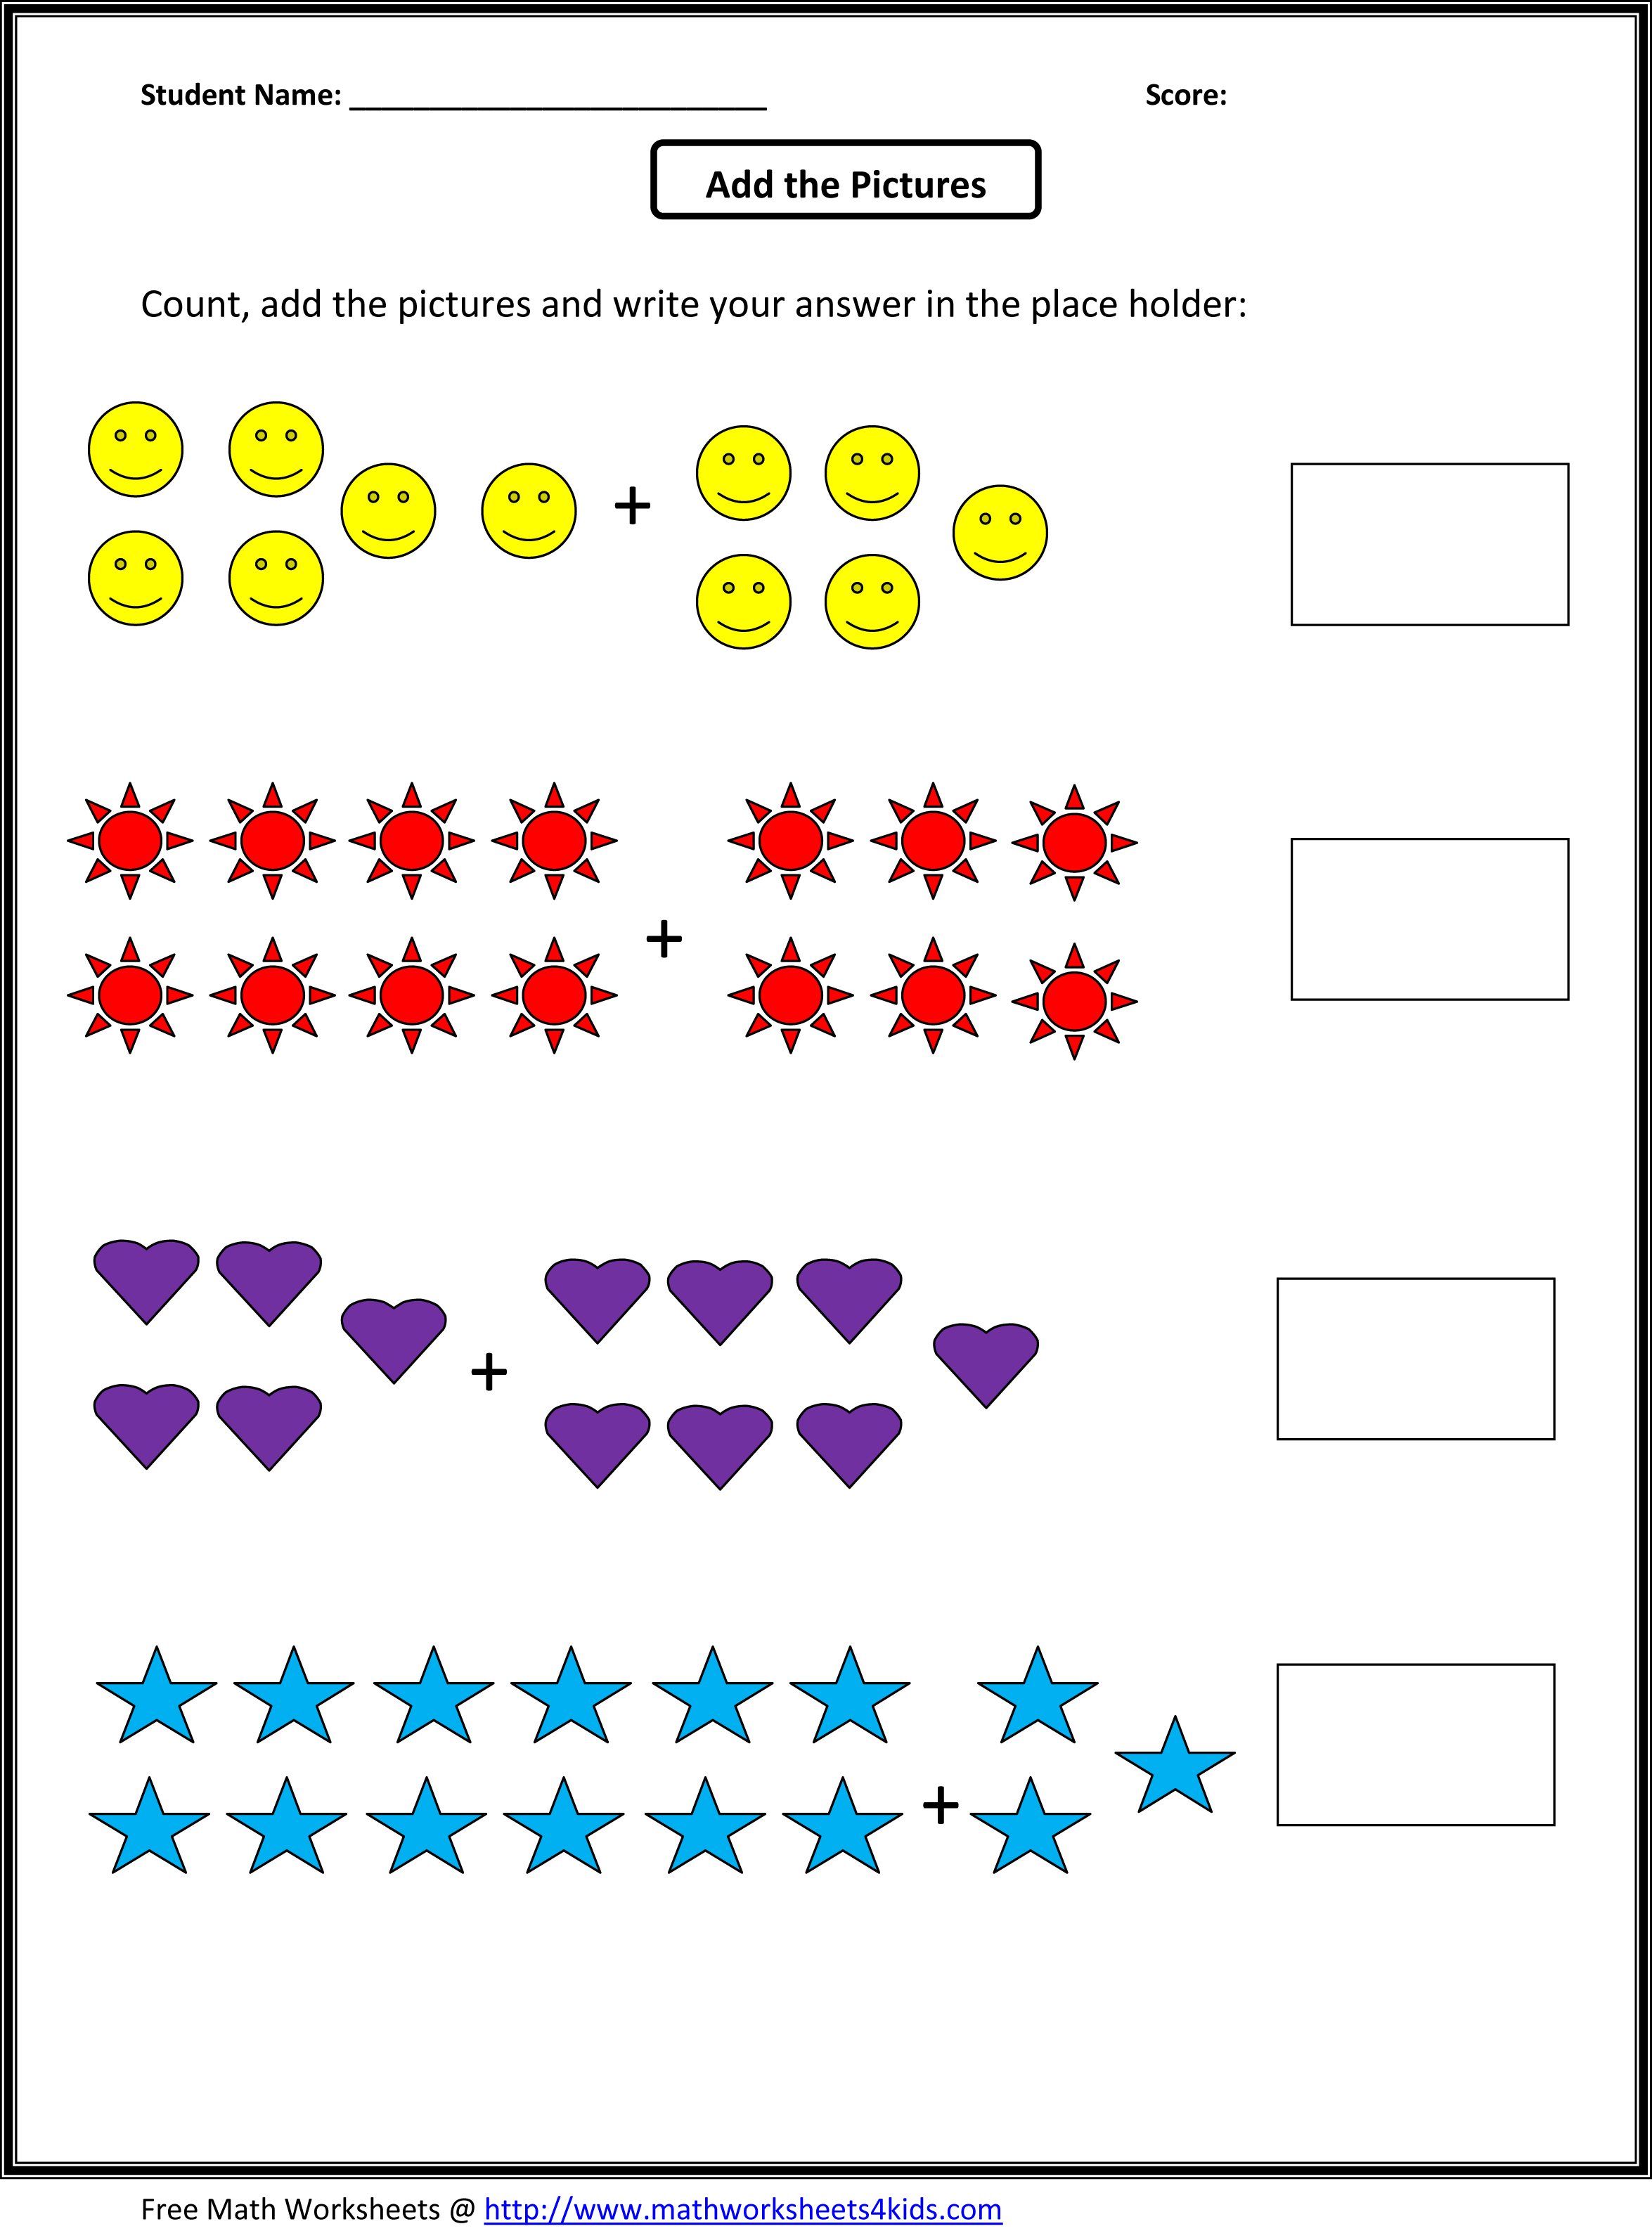 Proatmealus  Pretty Grade  Maths Worksheet  Reocurent With Luxury Math Worksheets For St Grade Free  Reocurent With Lovely Parts Of Speech Printable Worksheets Also Fraction Bar Worksheet In Addition Possessive Noun Worksheets Rd Grade And Contact Movie Worksheet As Well As Multiplication Fact Families Worksheets Additionally Free Printable Goal Setting Worksheets From Reocurentcom With Proatmealus  Luxury Grade  Maths Worksheet  Reocurent With Lovely Math Worksheets For St Grade Free  Reocurent And Pretty Parts Of Speech Printable Worksheets Also Fraction Bar Worksheet In Addition Possessive Noun Worksheets Rd Grade From Reocurentcom